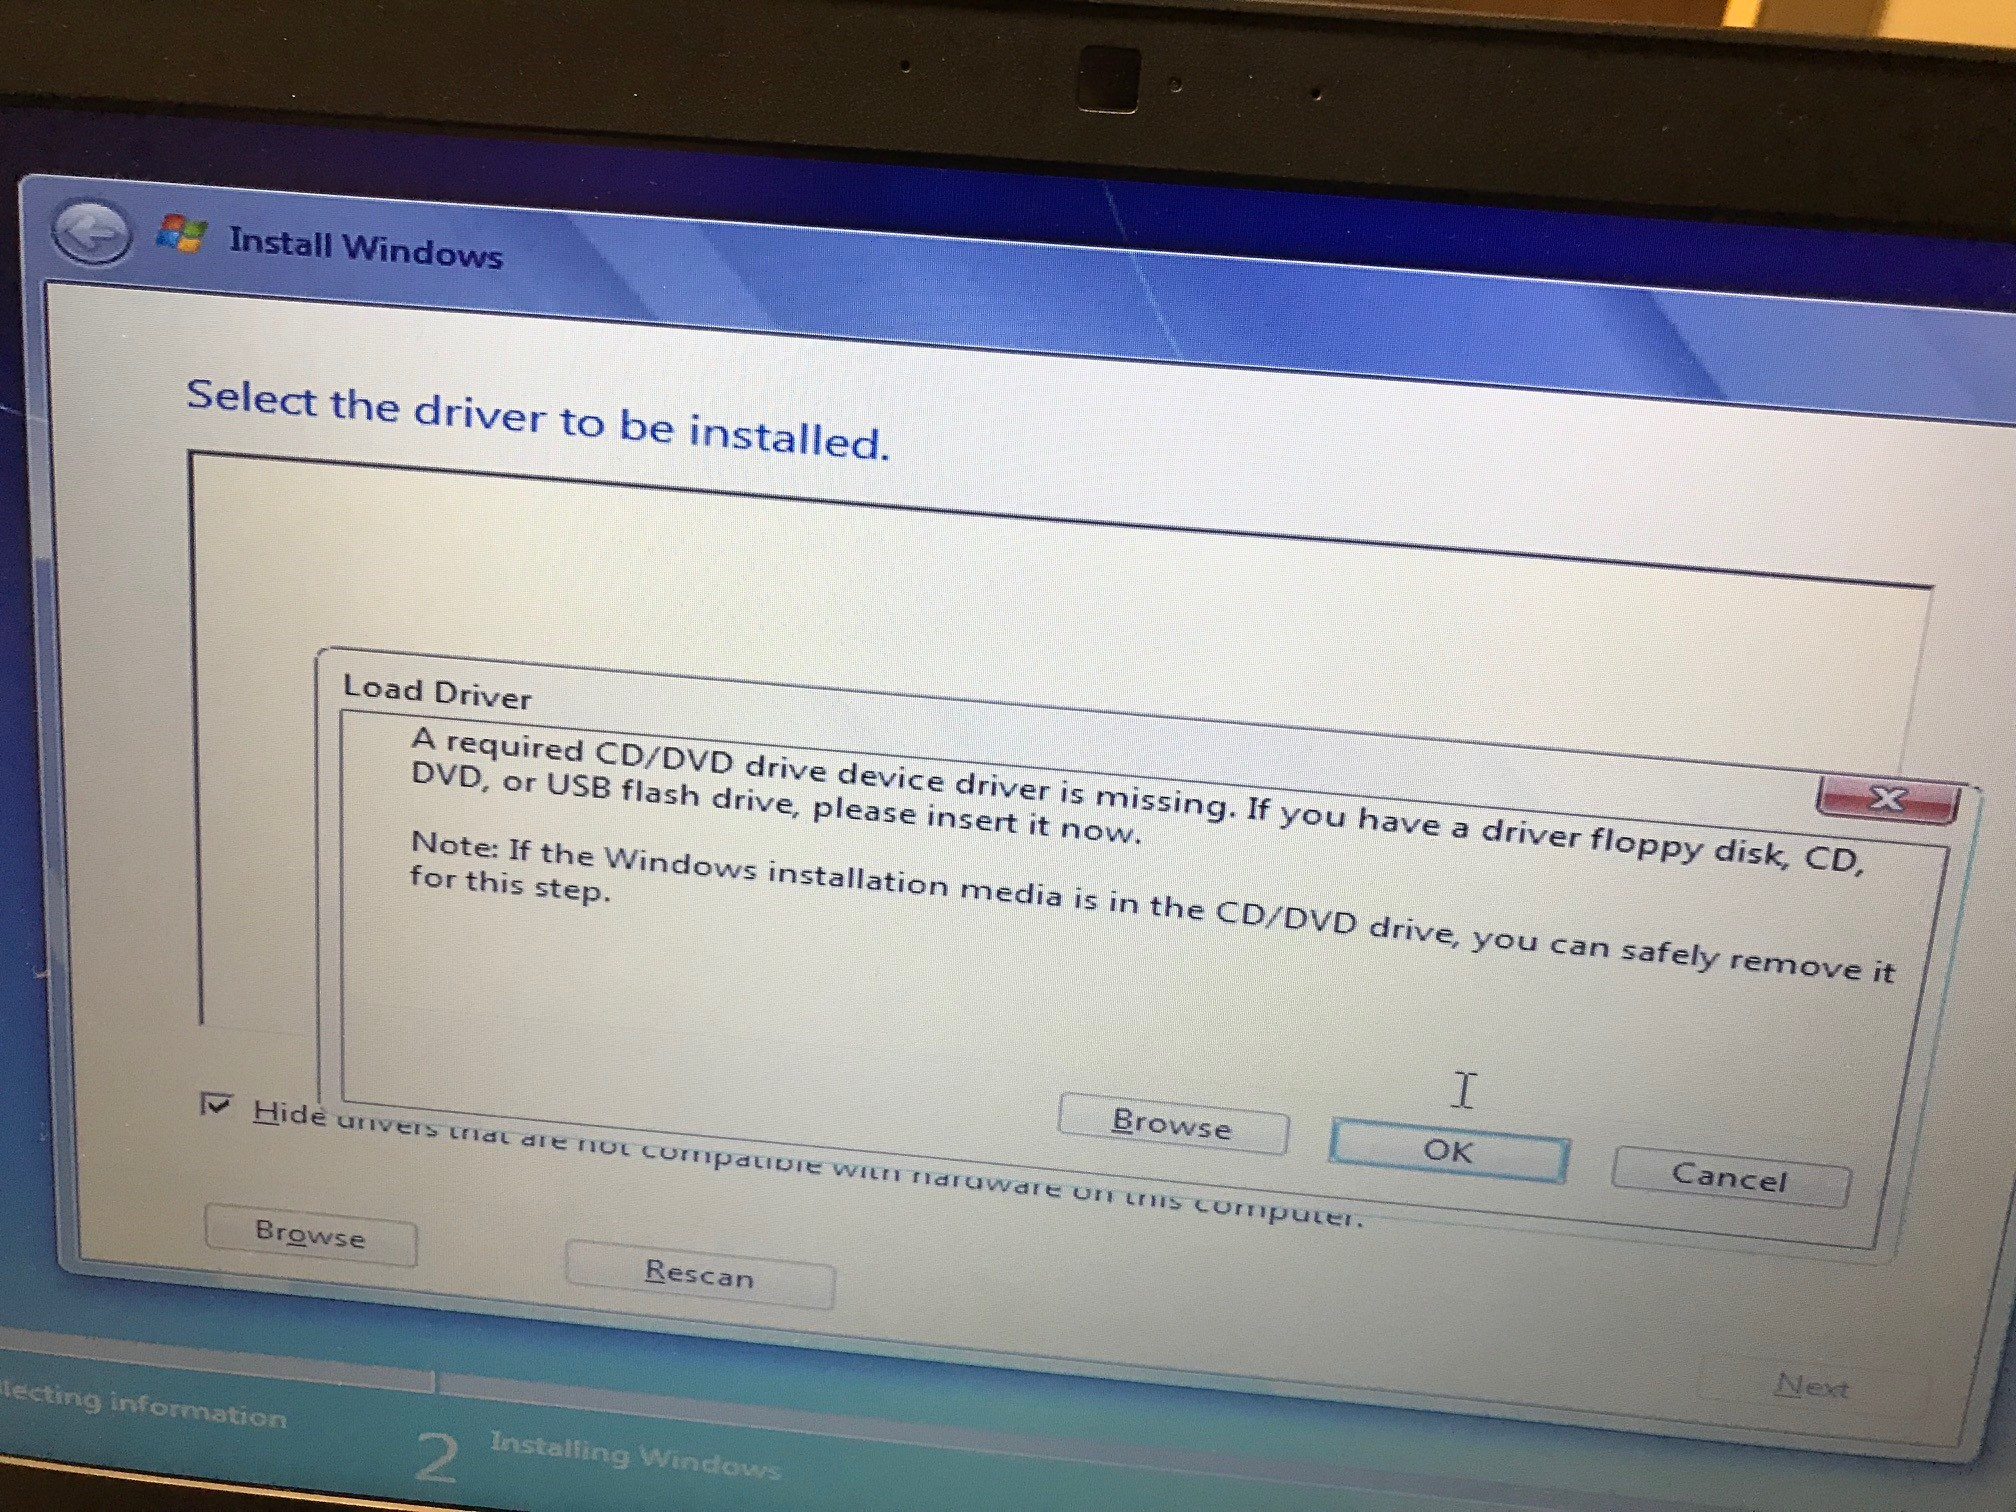 Cannot install Windows 7 Professional SP1 OS due to